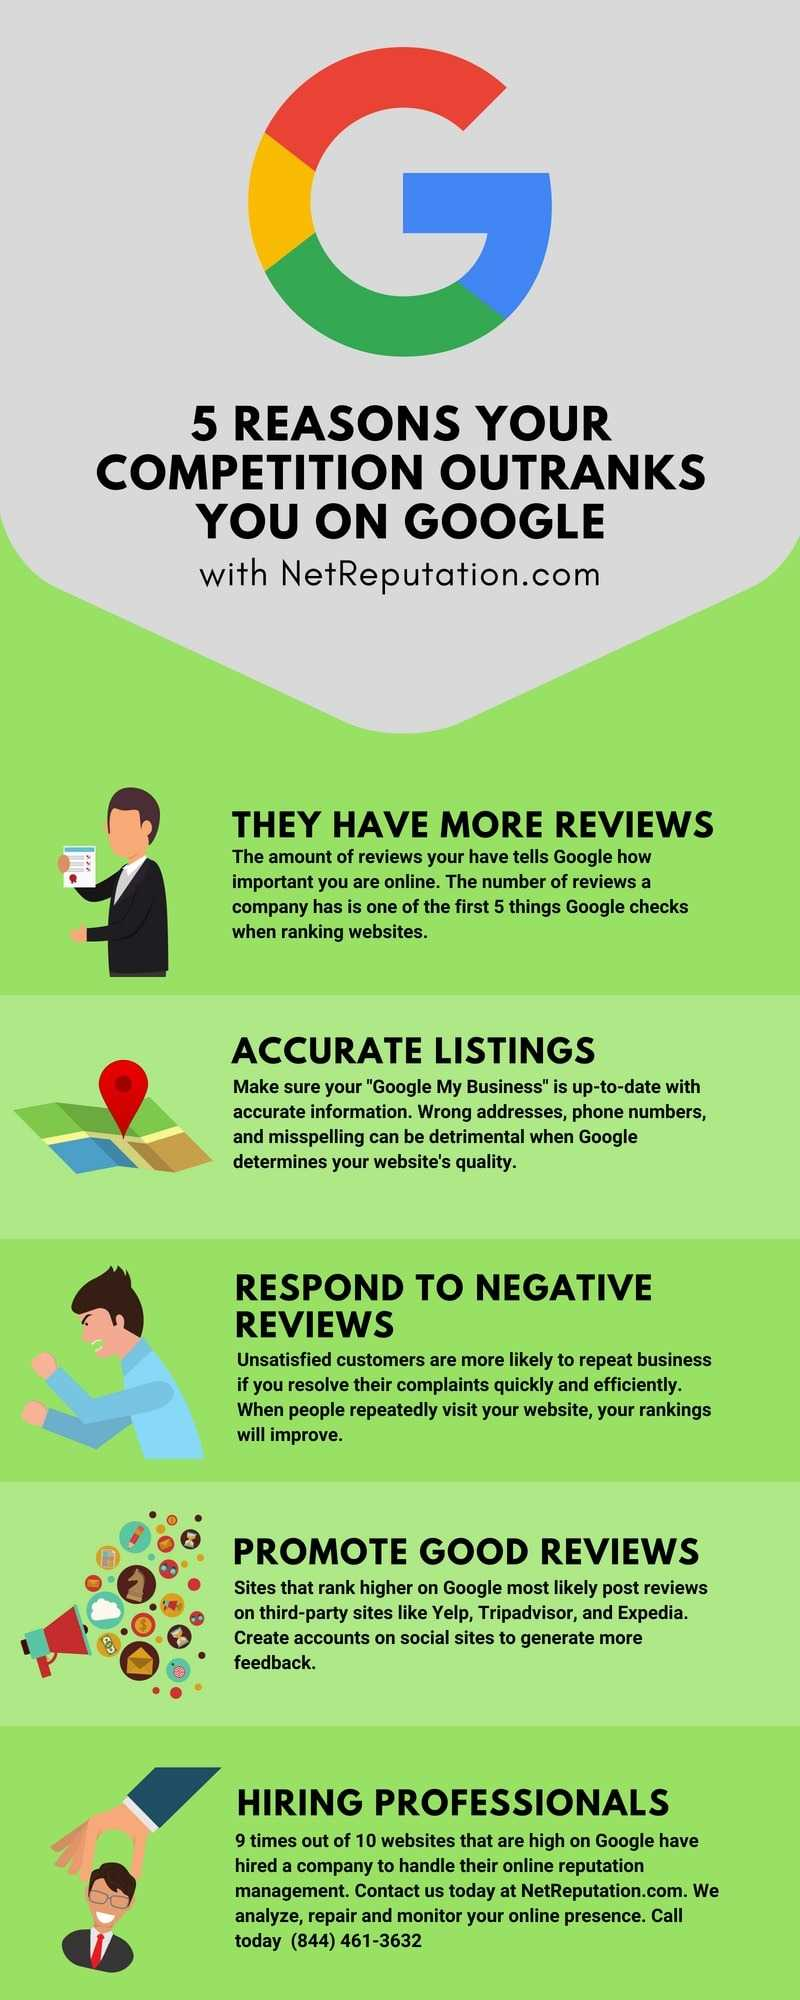 Top 5 Reasons Your Competition Ranks on Google